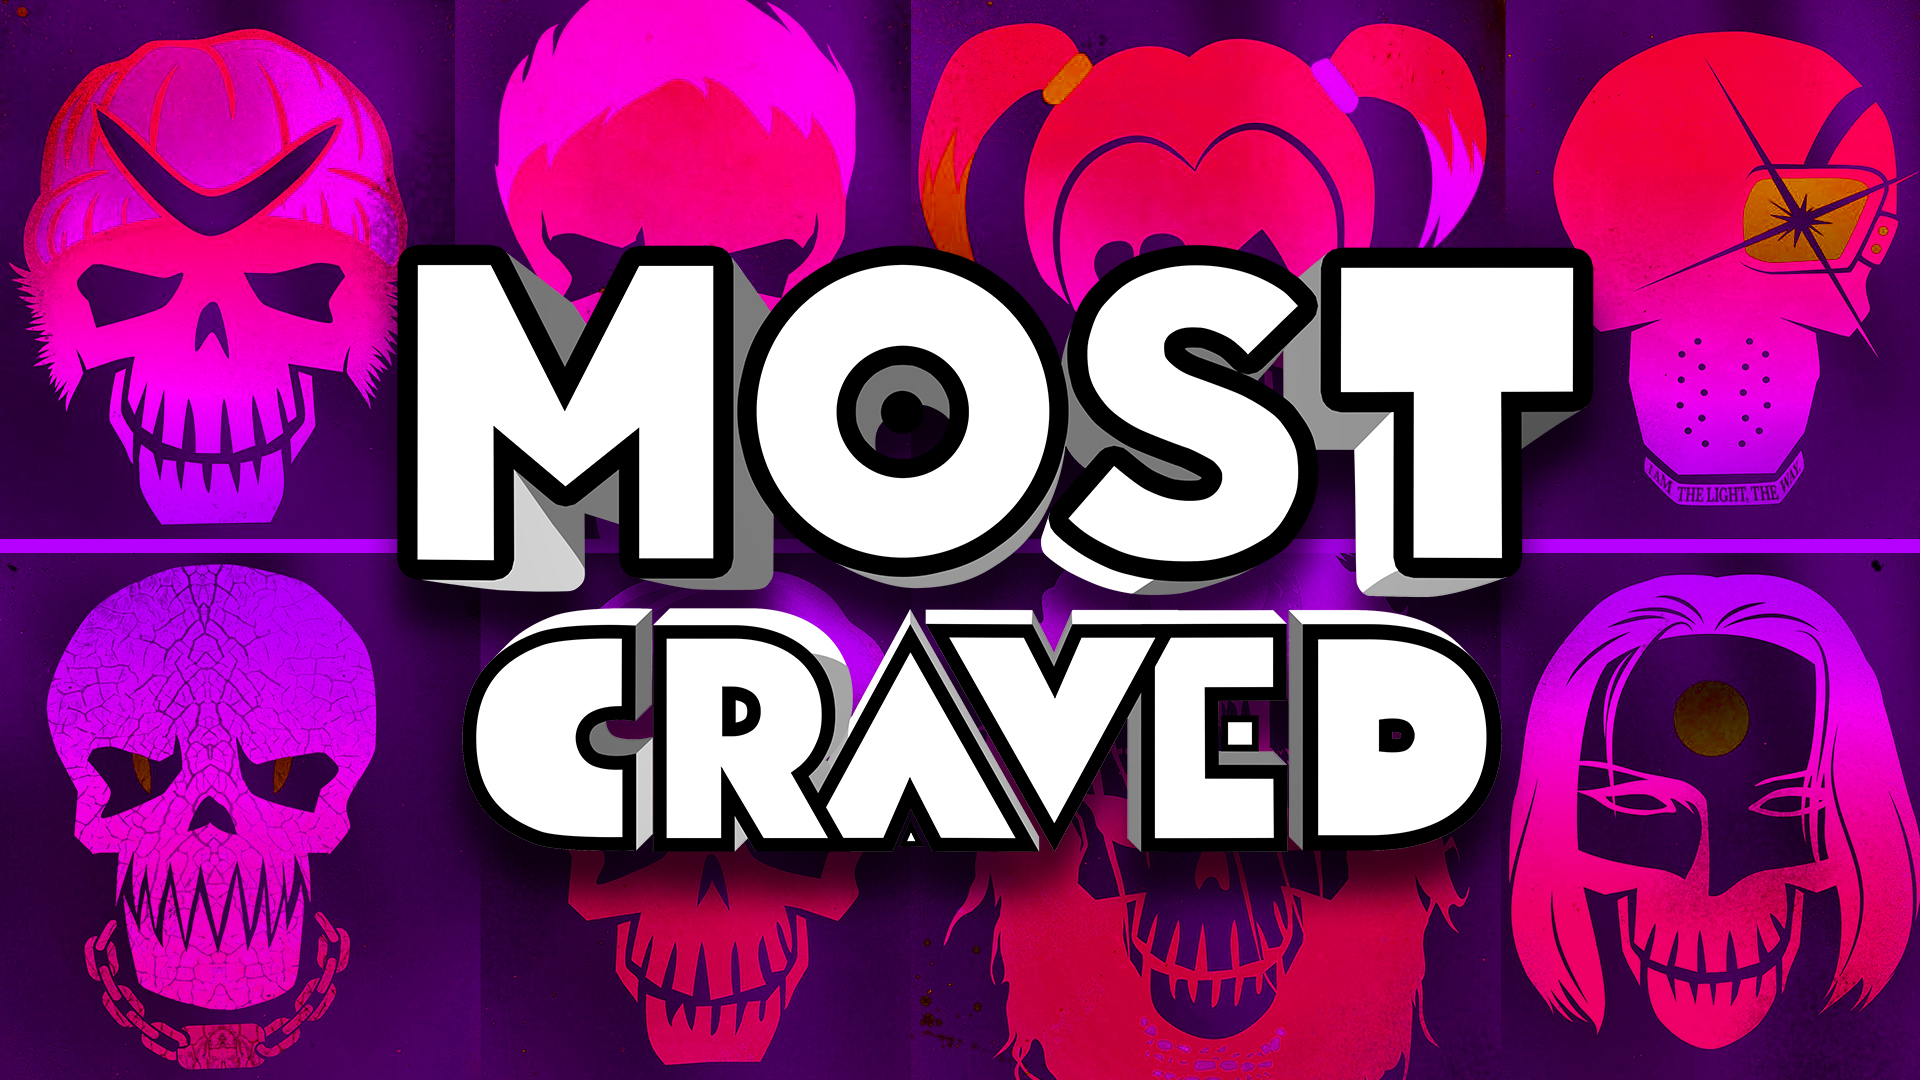 Most Craved Does DC | Suicide Squad, Wonder Woman and Justice League